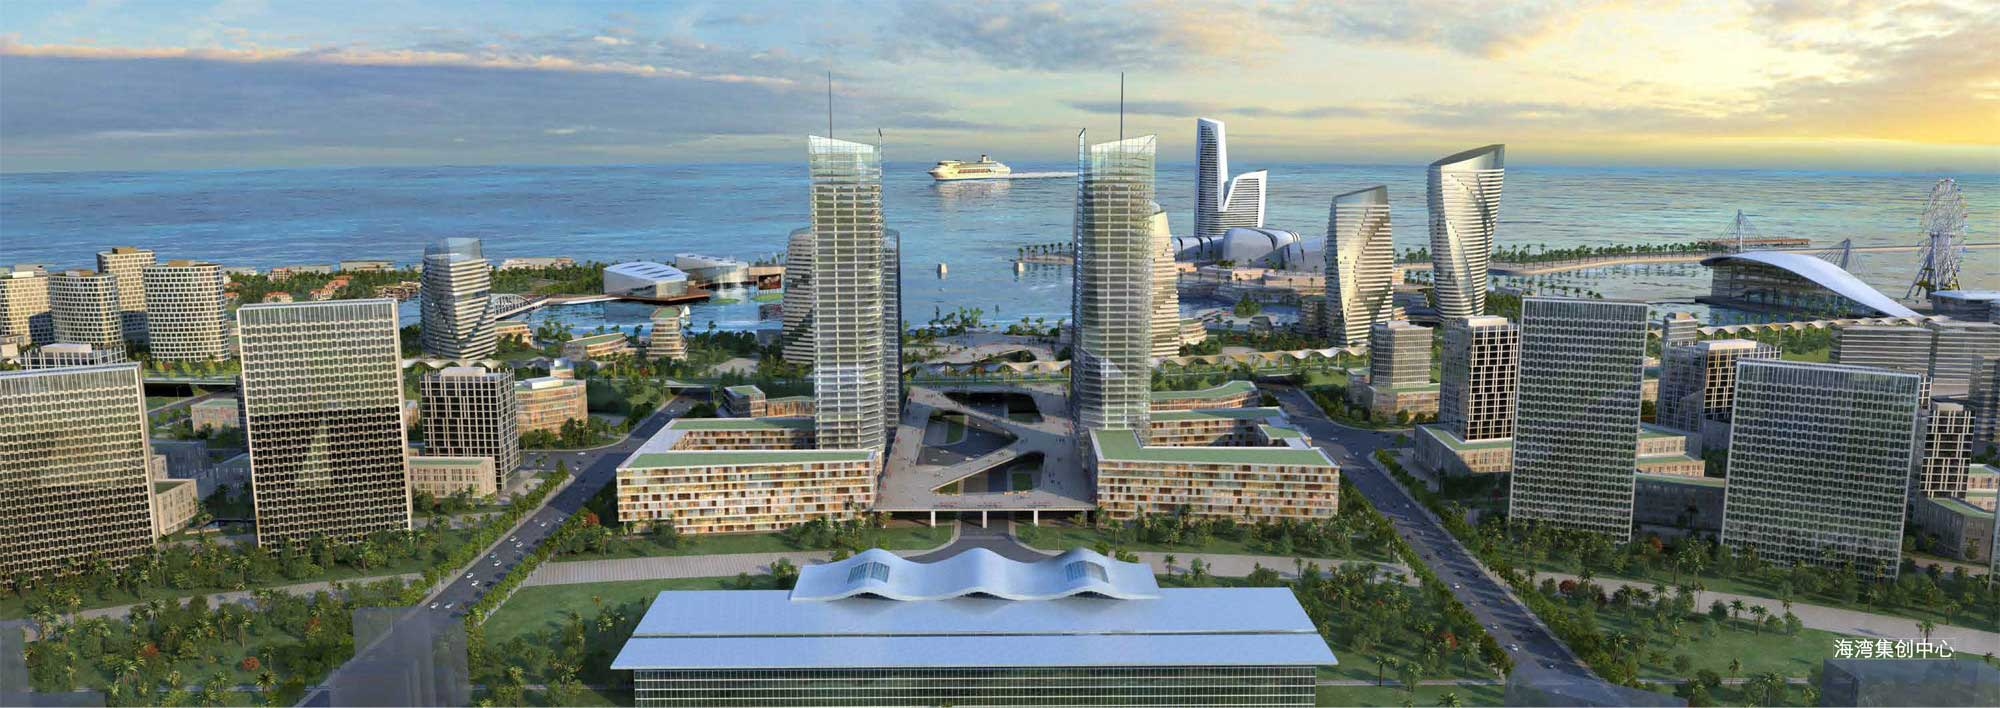 RMJM Takes Second Place in Urban Design Competition for Shanghai Jinshan Coastal Area